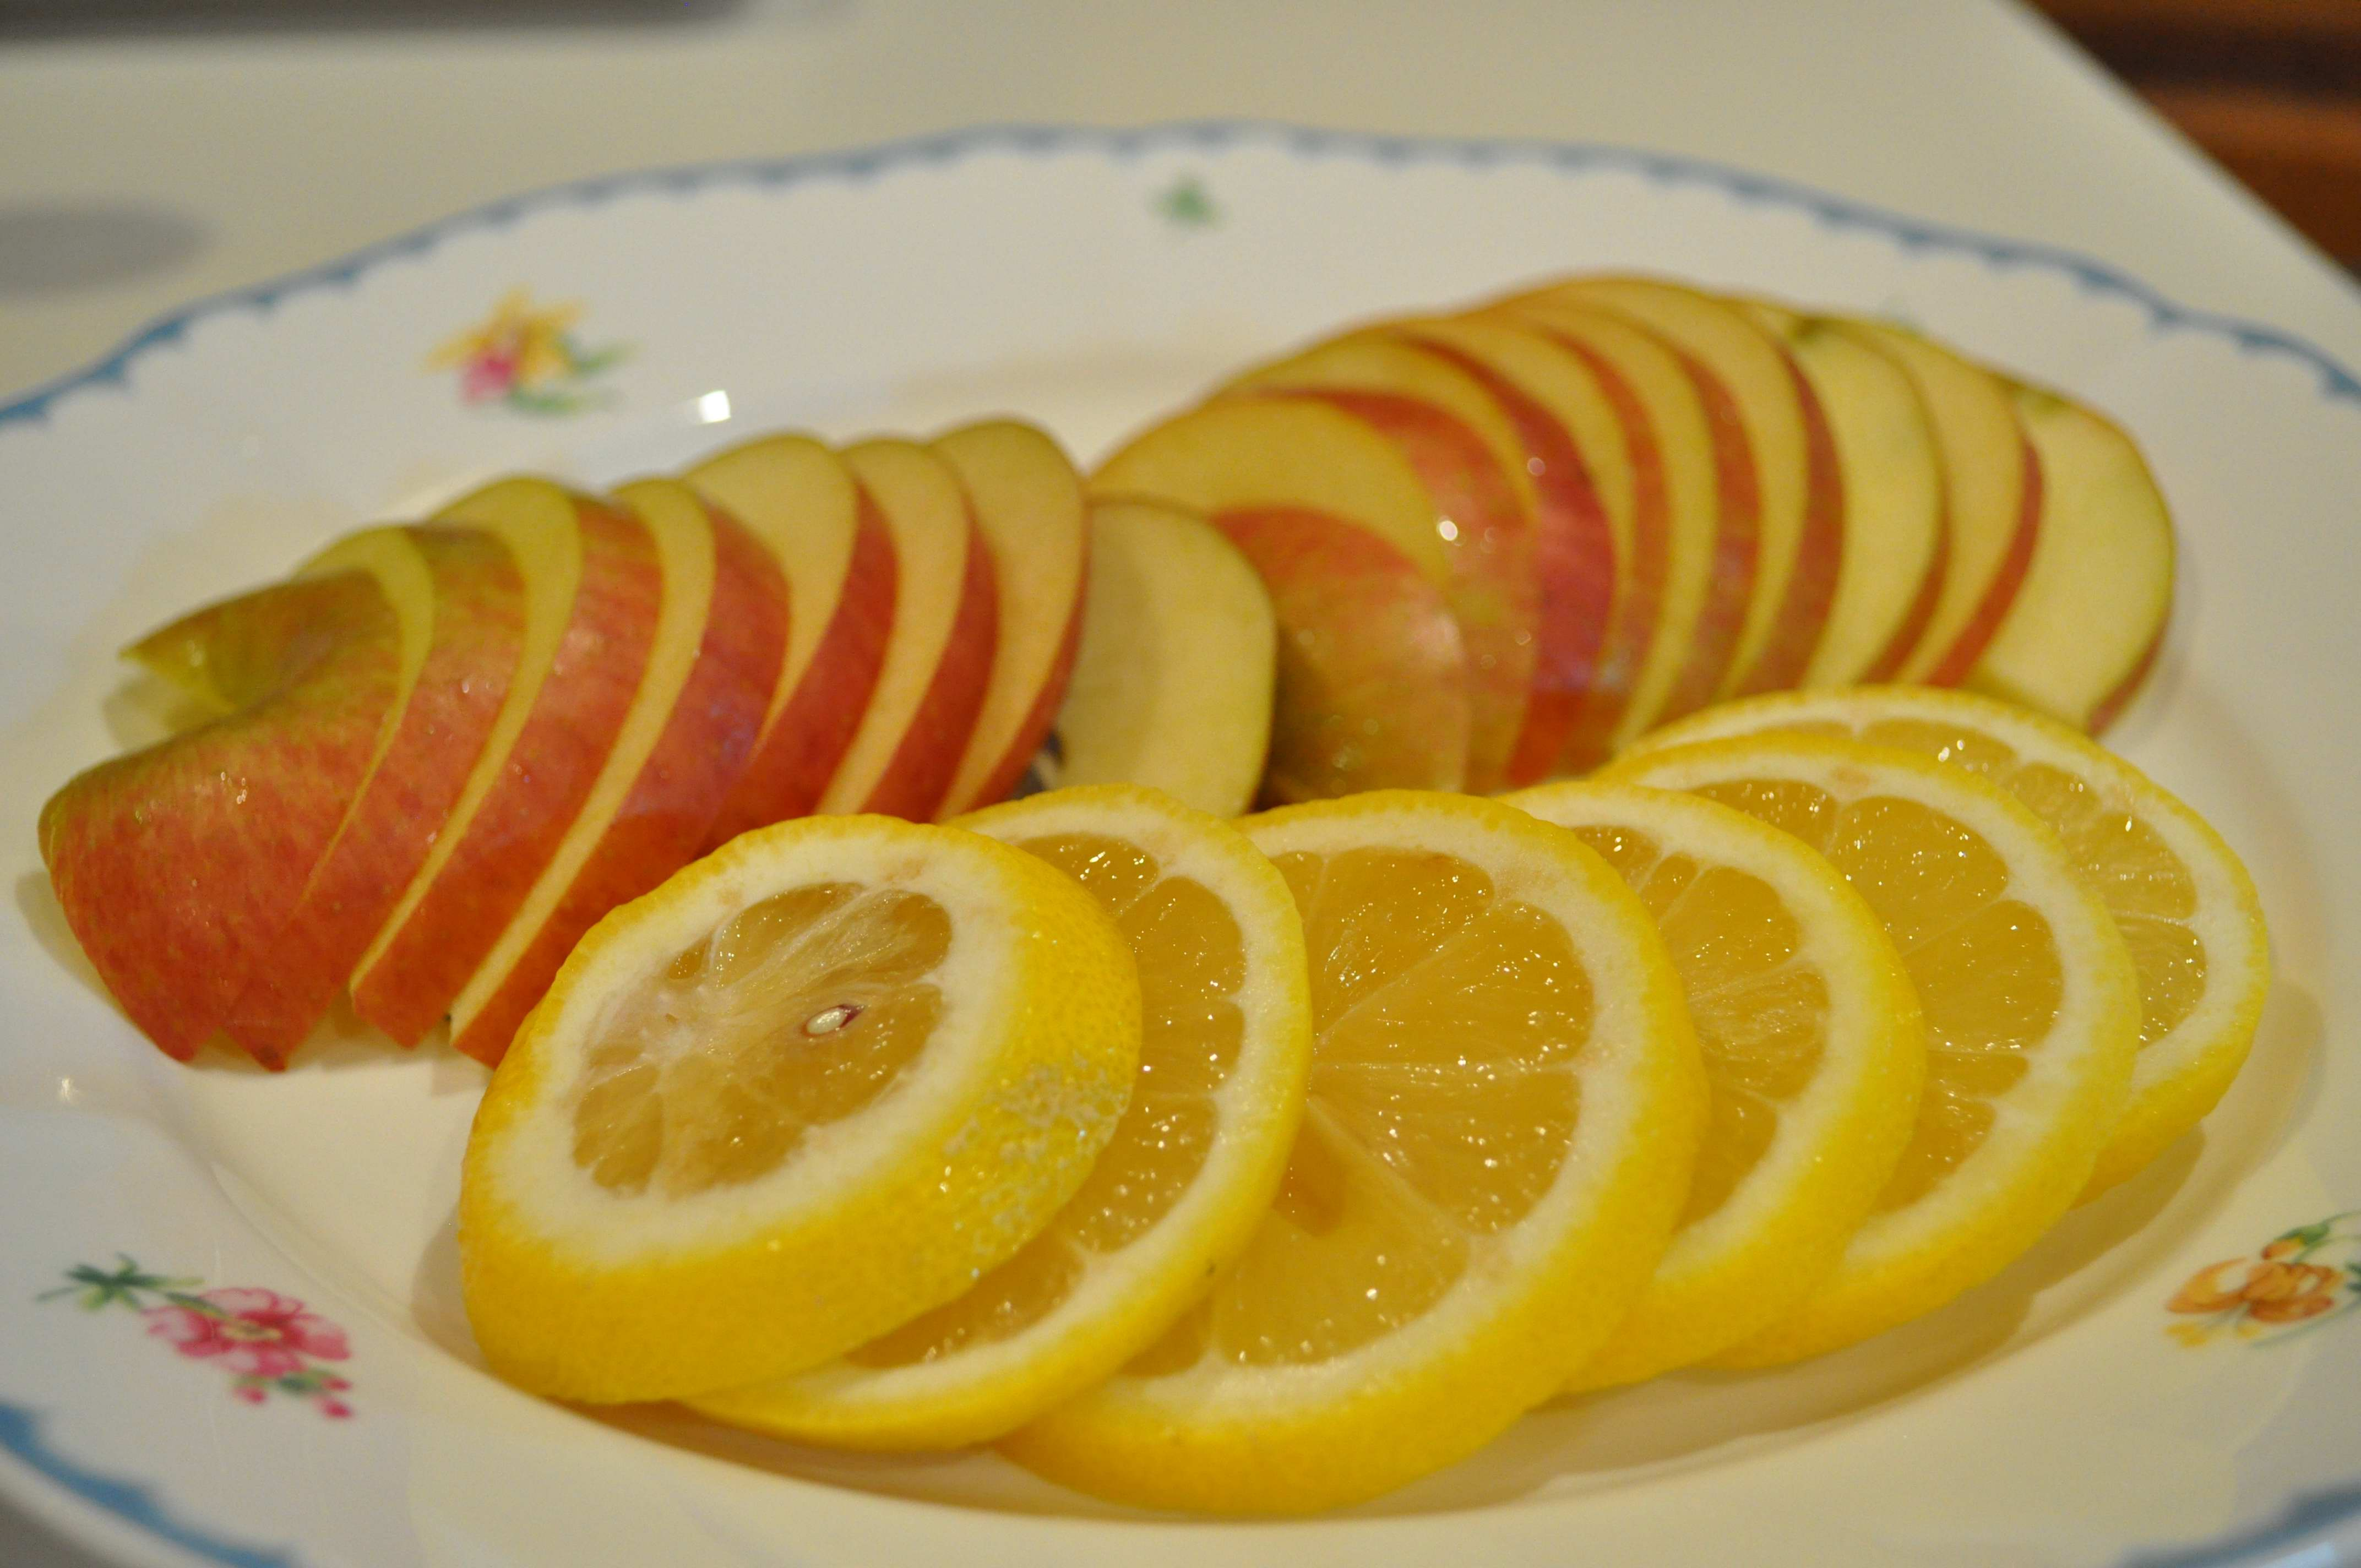 Apple and Lemon slices